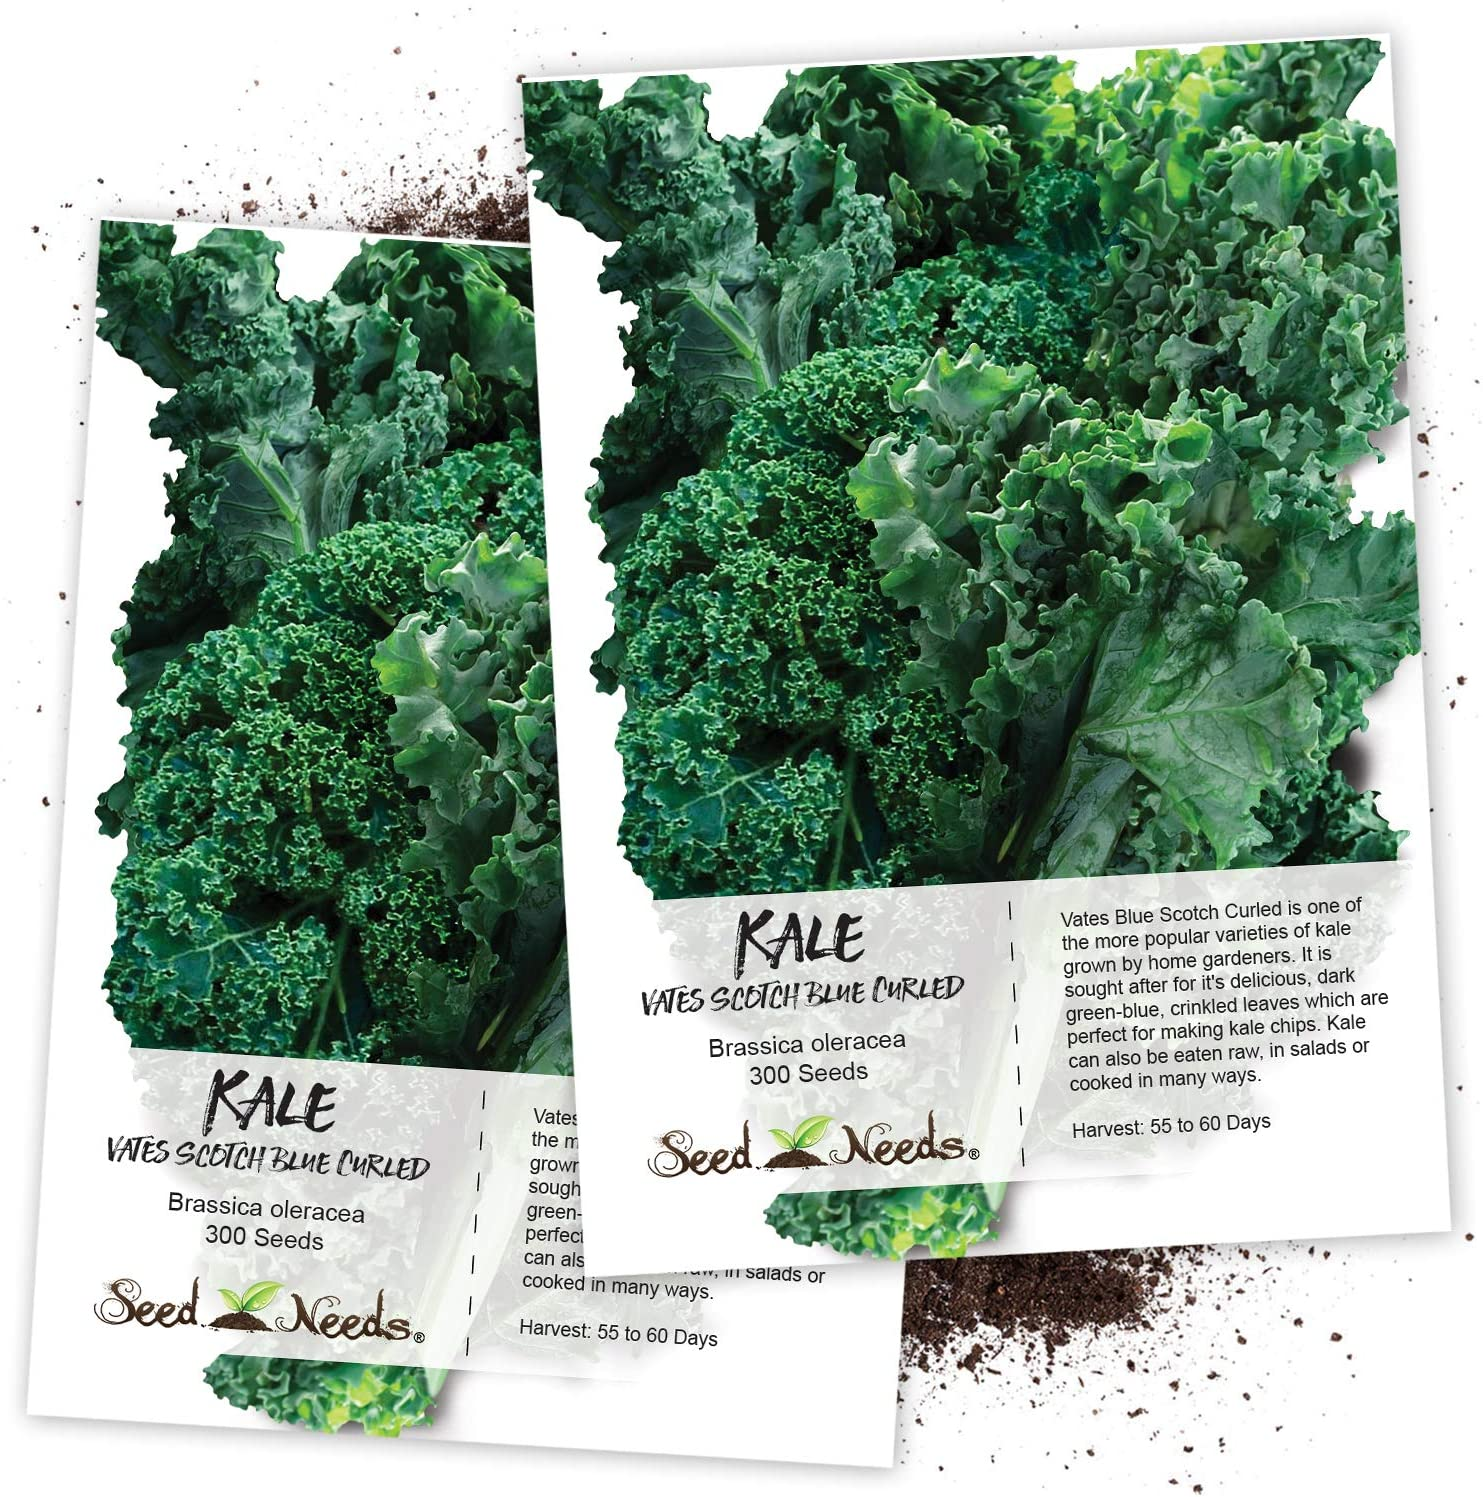 Seed Needs, Vates Blue Scotch Curled Kale (Brassica oleracea) Twin Pack of 300 Seeds Each Non-GMO